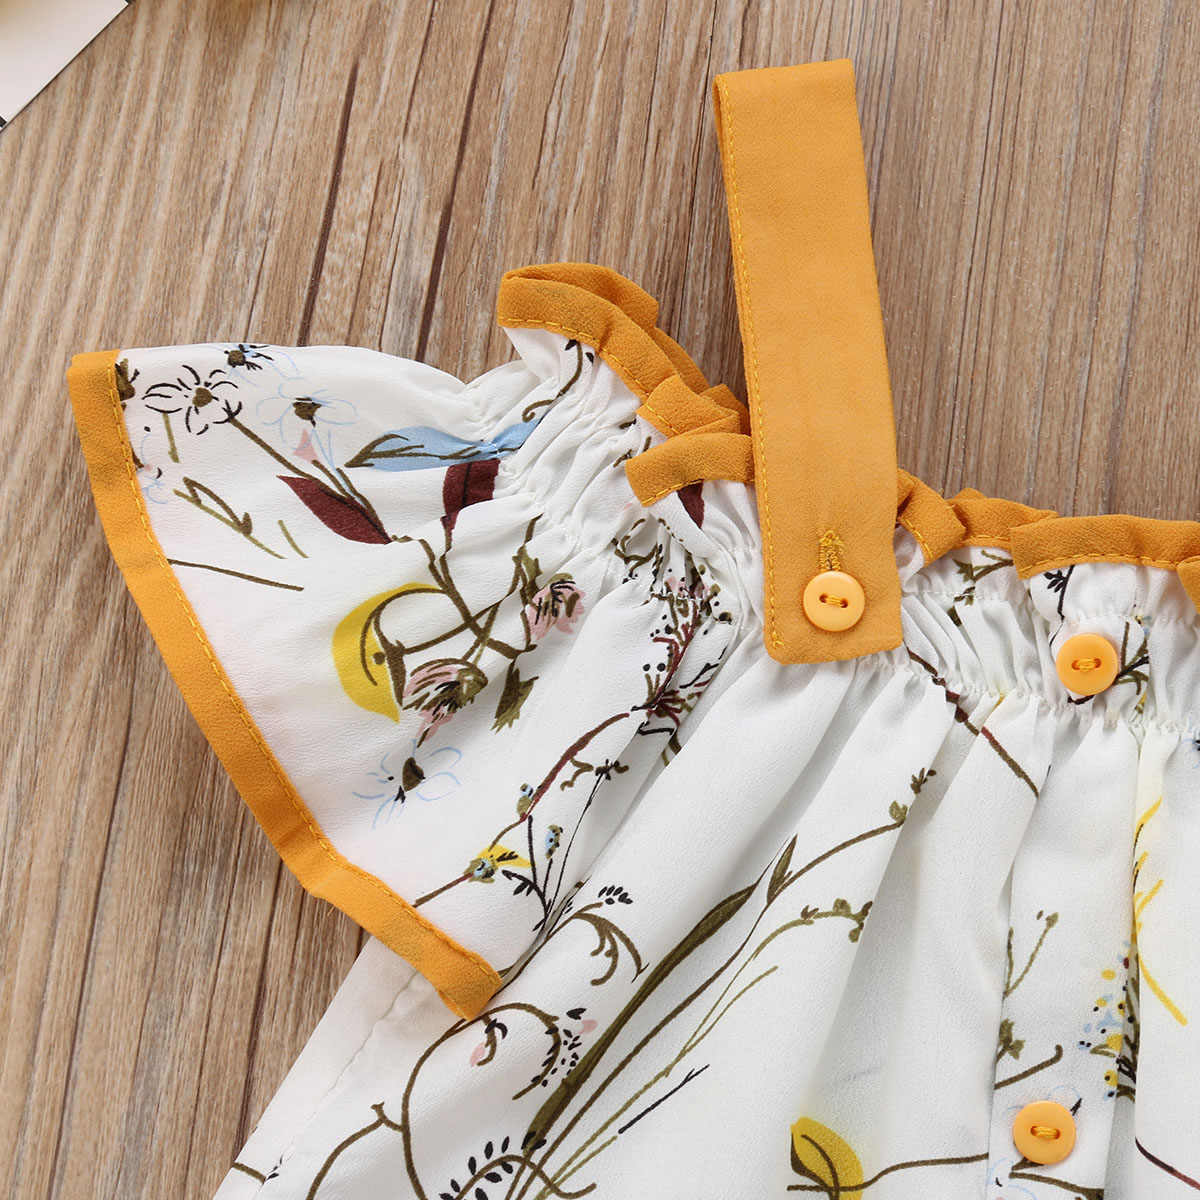 Pudcoco New Brand Kids Baby Girls Strap Floral Tops Loose Flared Long Pants Summer Clothes Outfits 2pcs